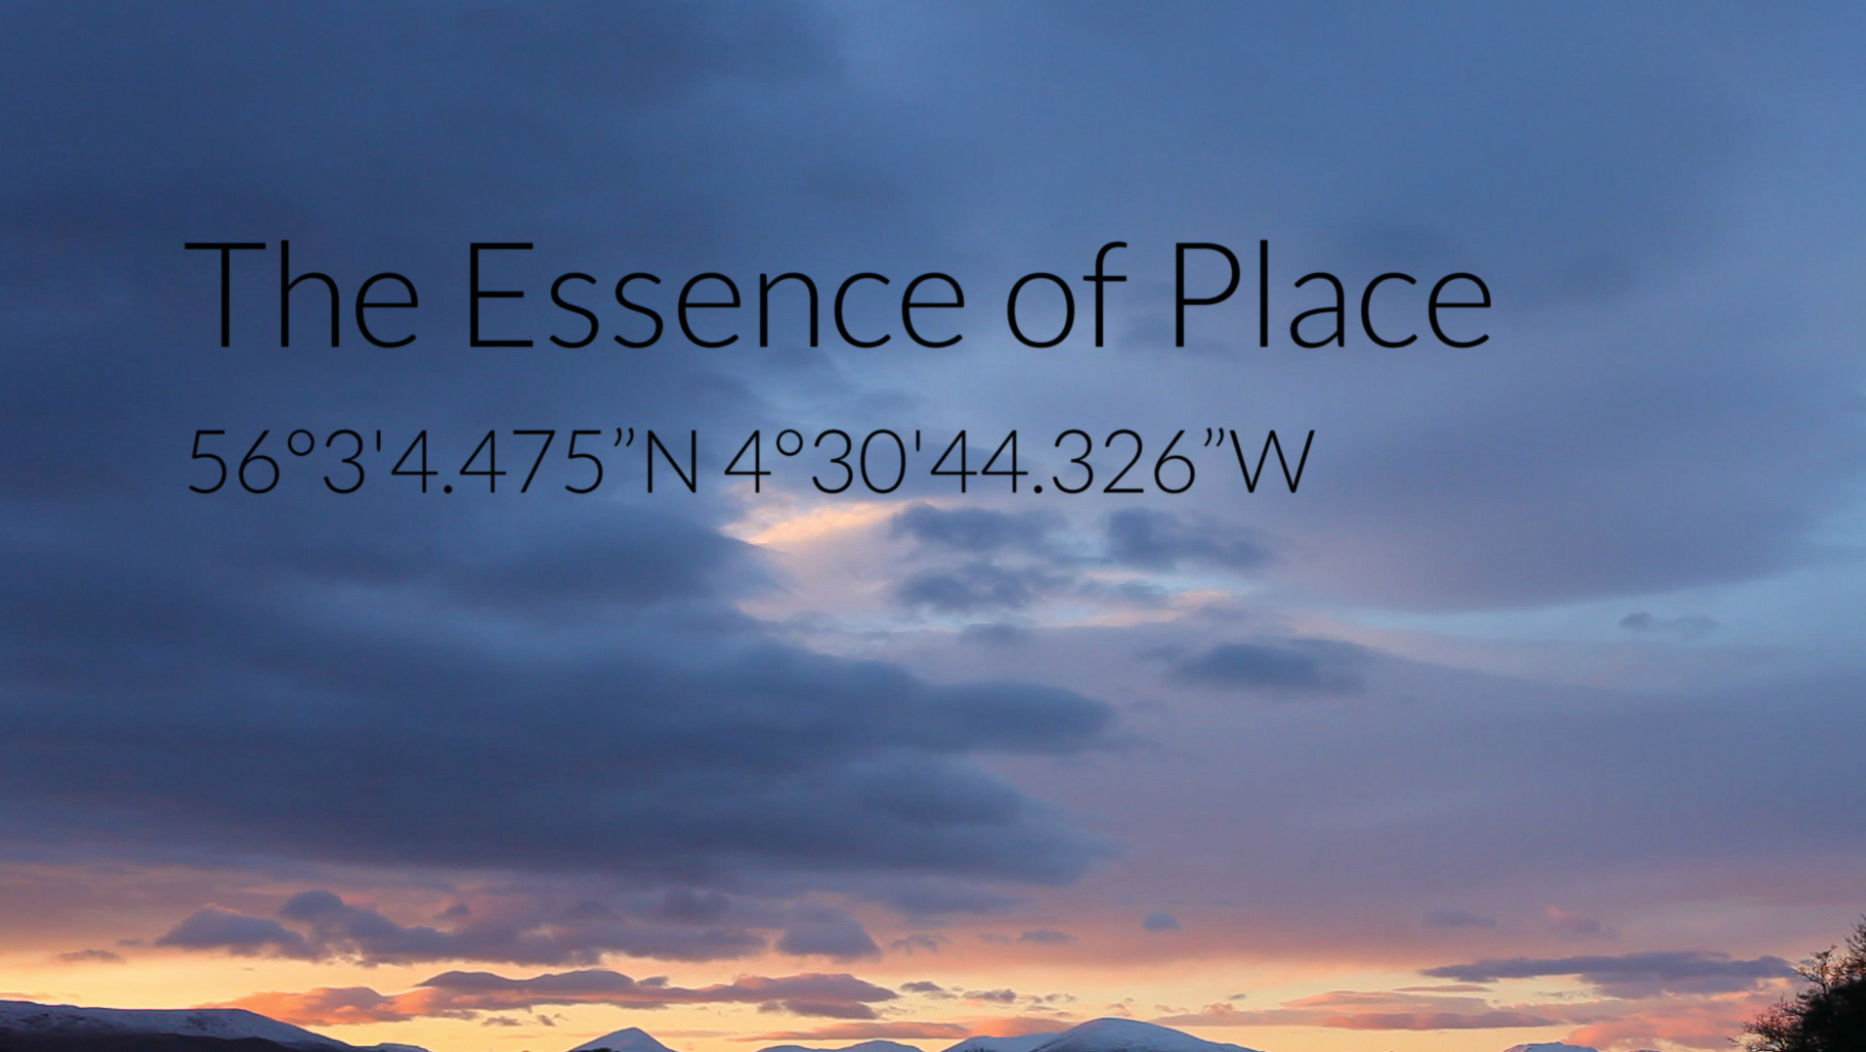 The Essence of Place: An open air screening by candlelight